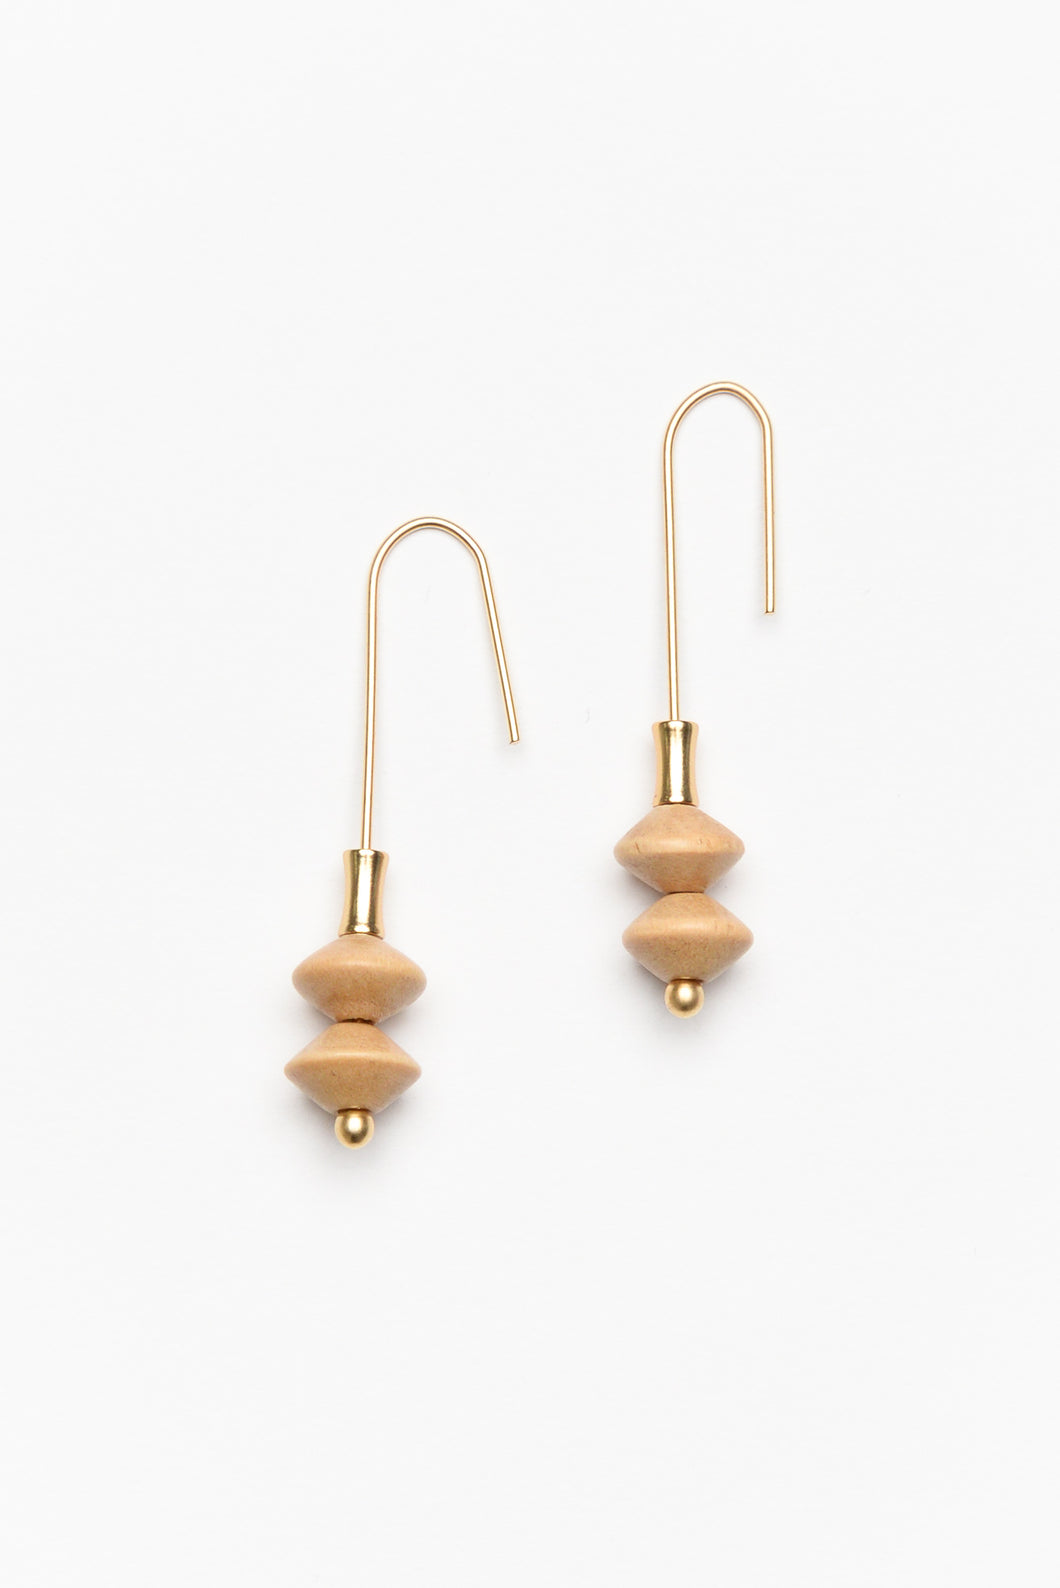 Antequera Gold Hook Earring